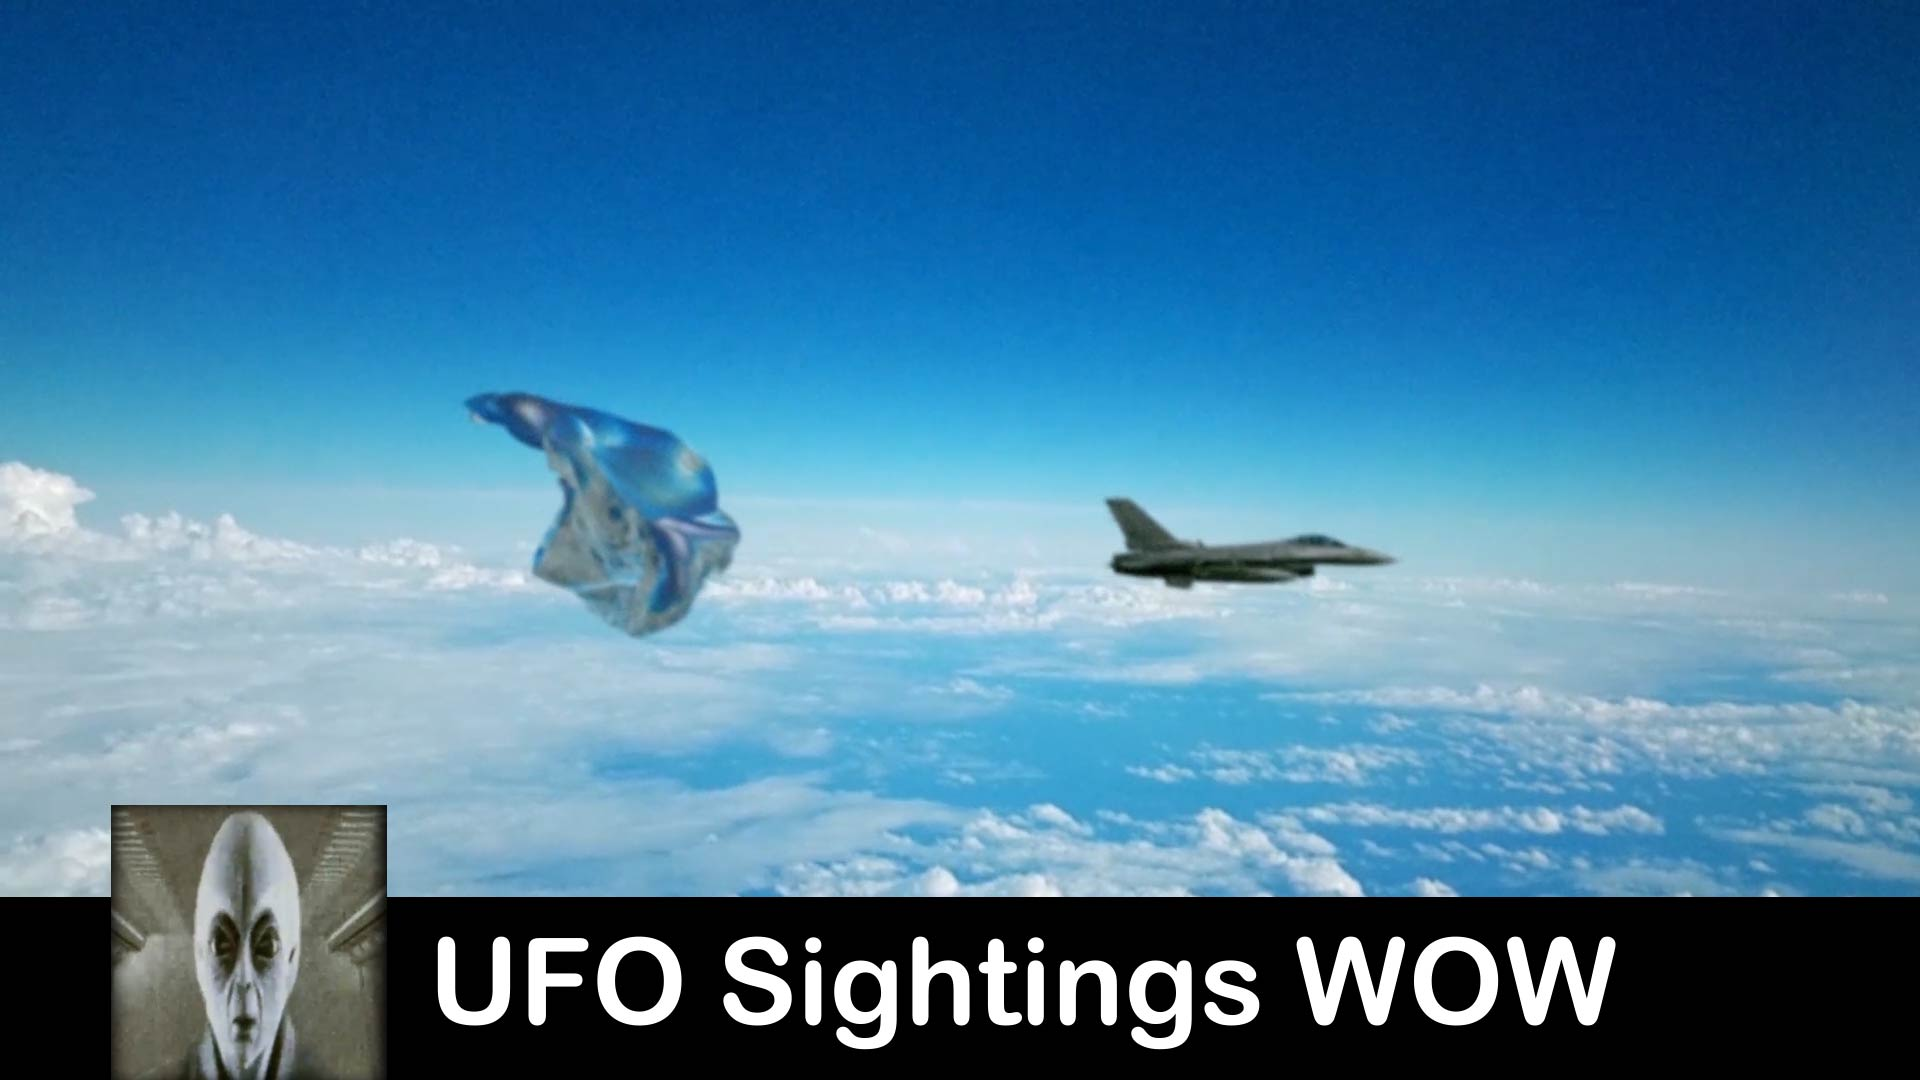 UFO Sightings You Might Want To See This